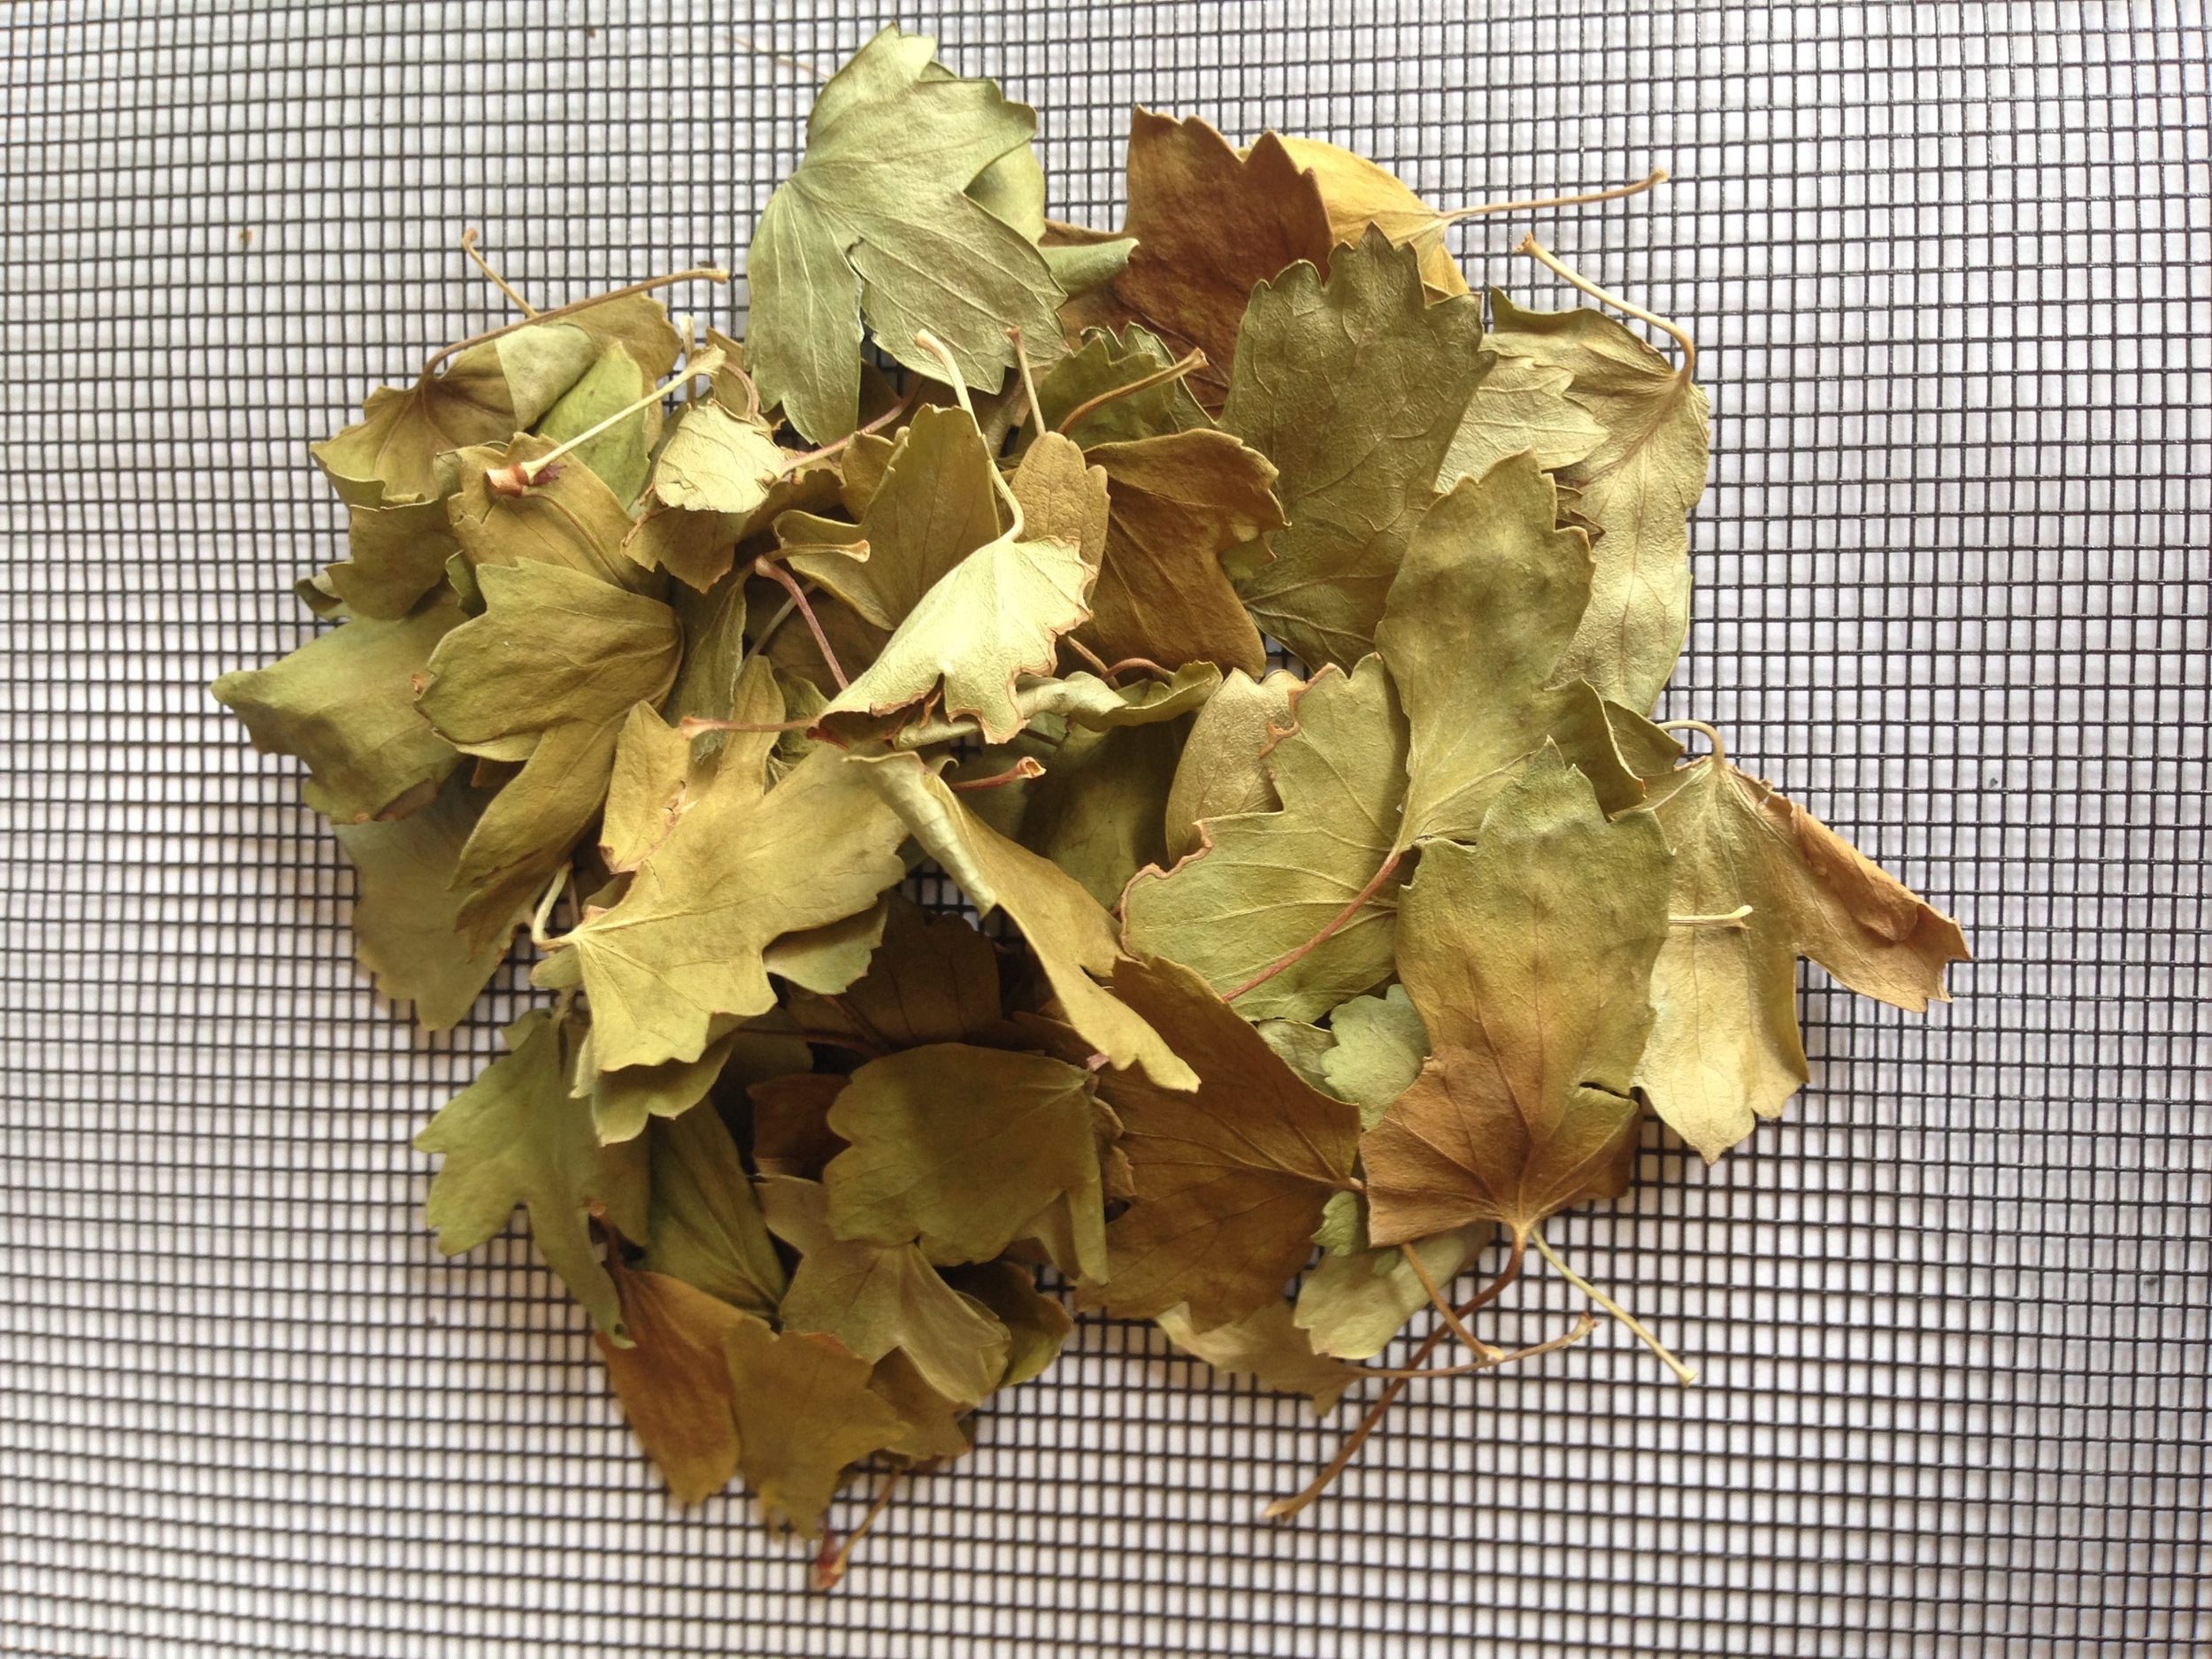 Golden currant leaves